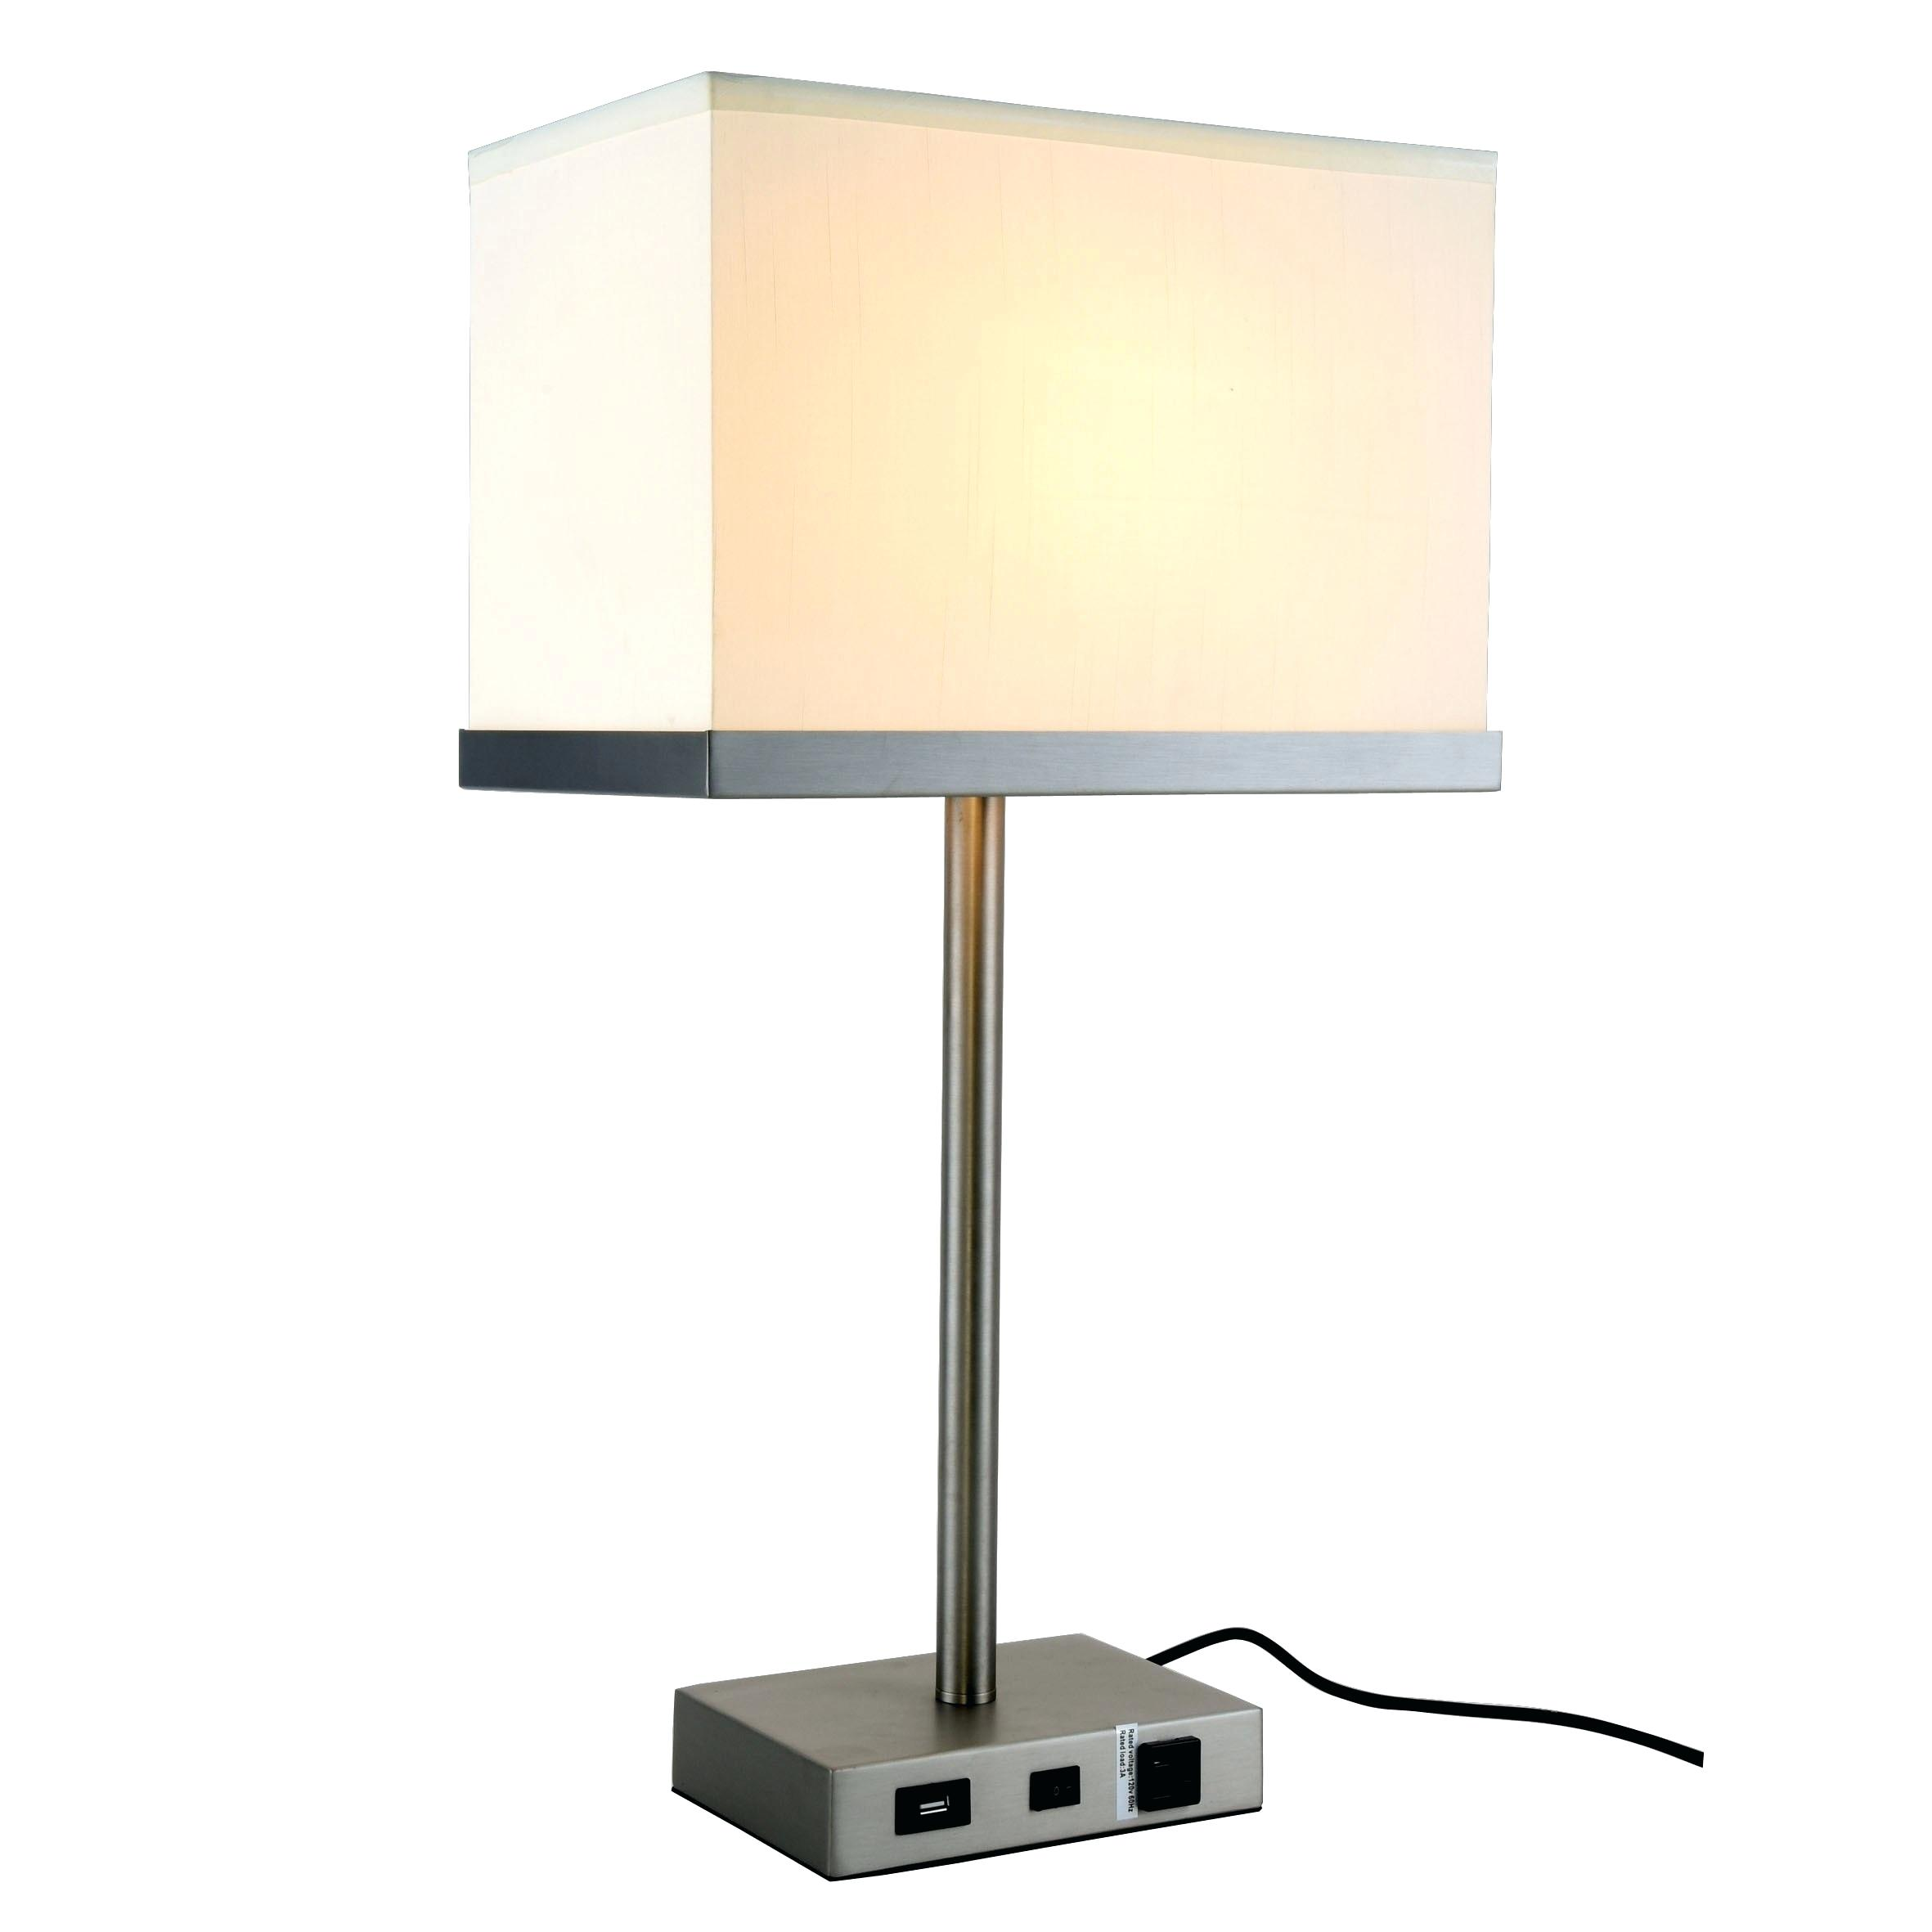 table lamp with usb port dekho collection light vintage nickel finish bronze flesner brushed steel accent outdoor deck umbrella dog grooming pier one promo code outside espresso